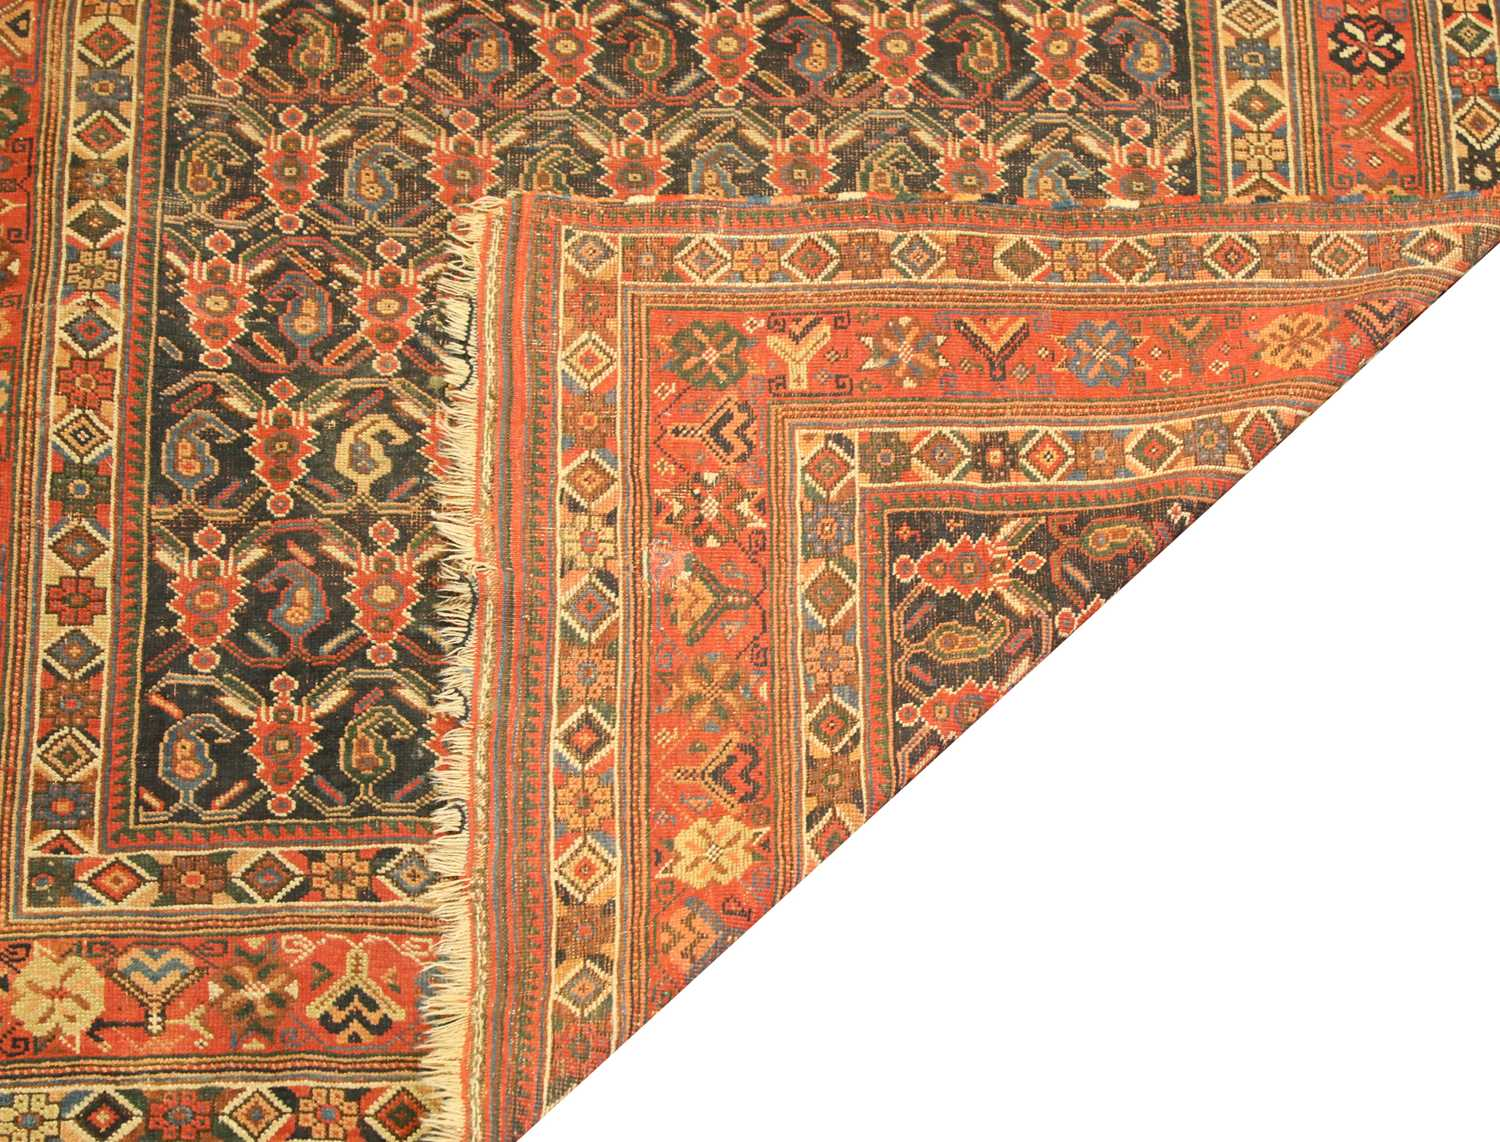 A North-West Persian wool rug, - Image 2 of 2